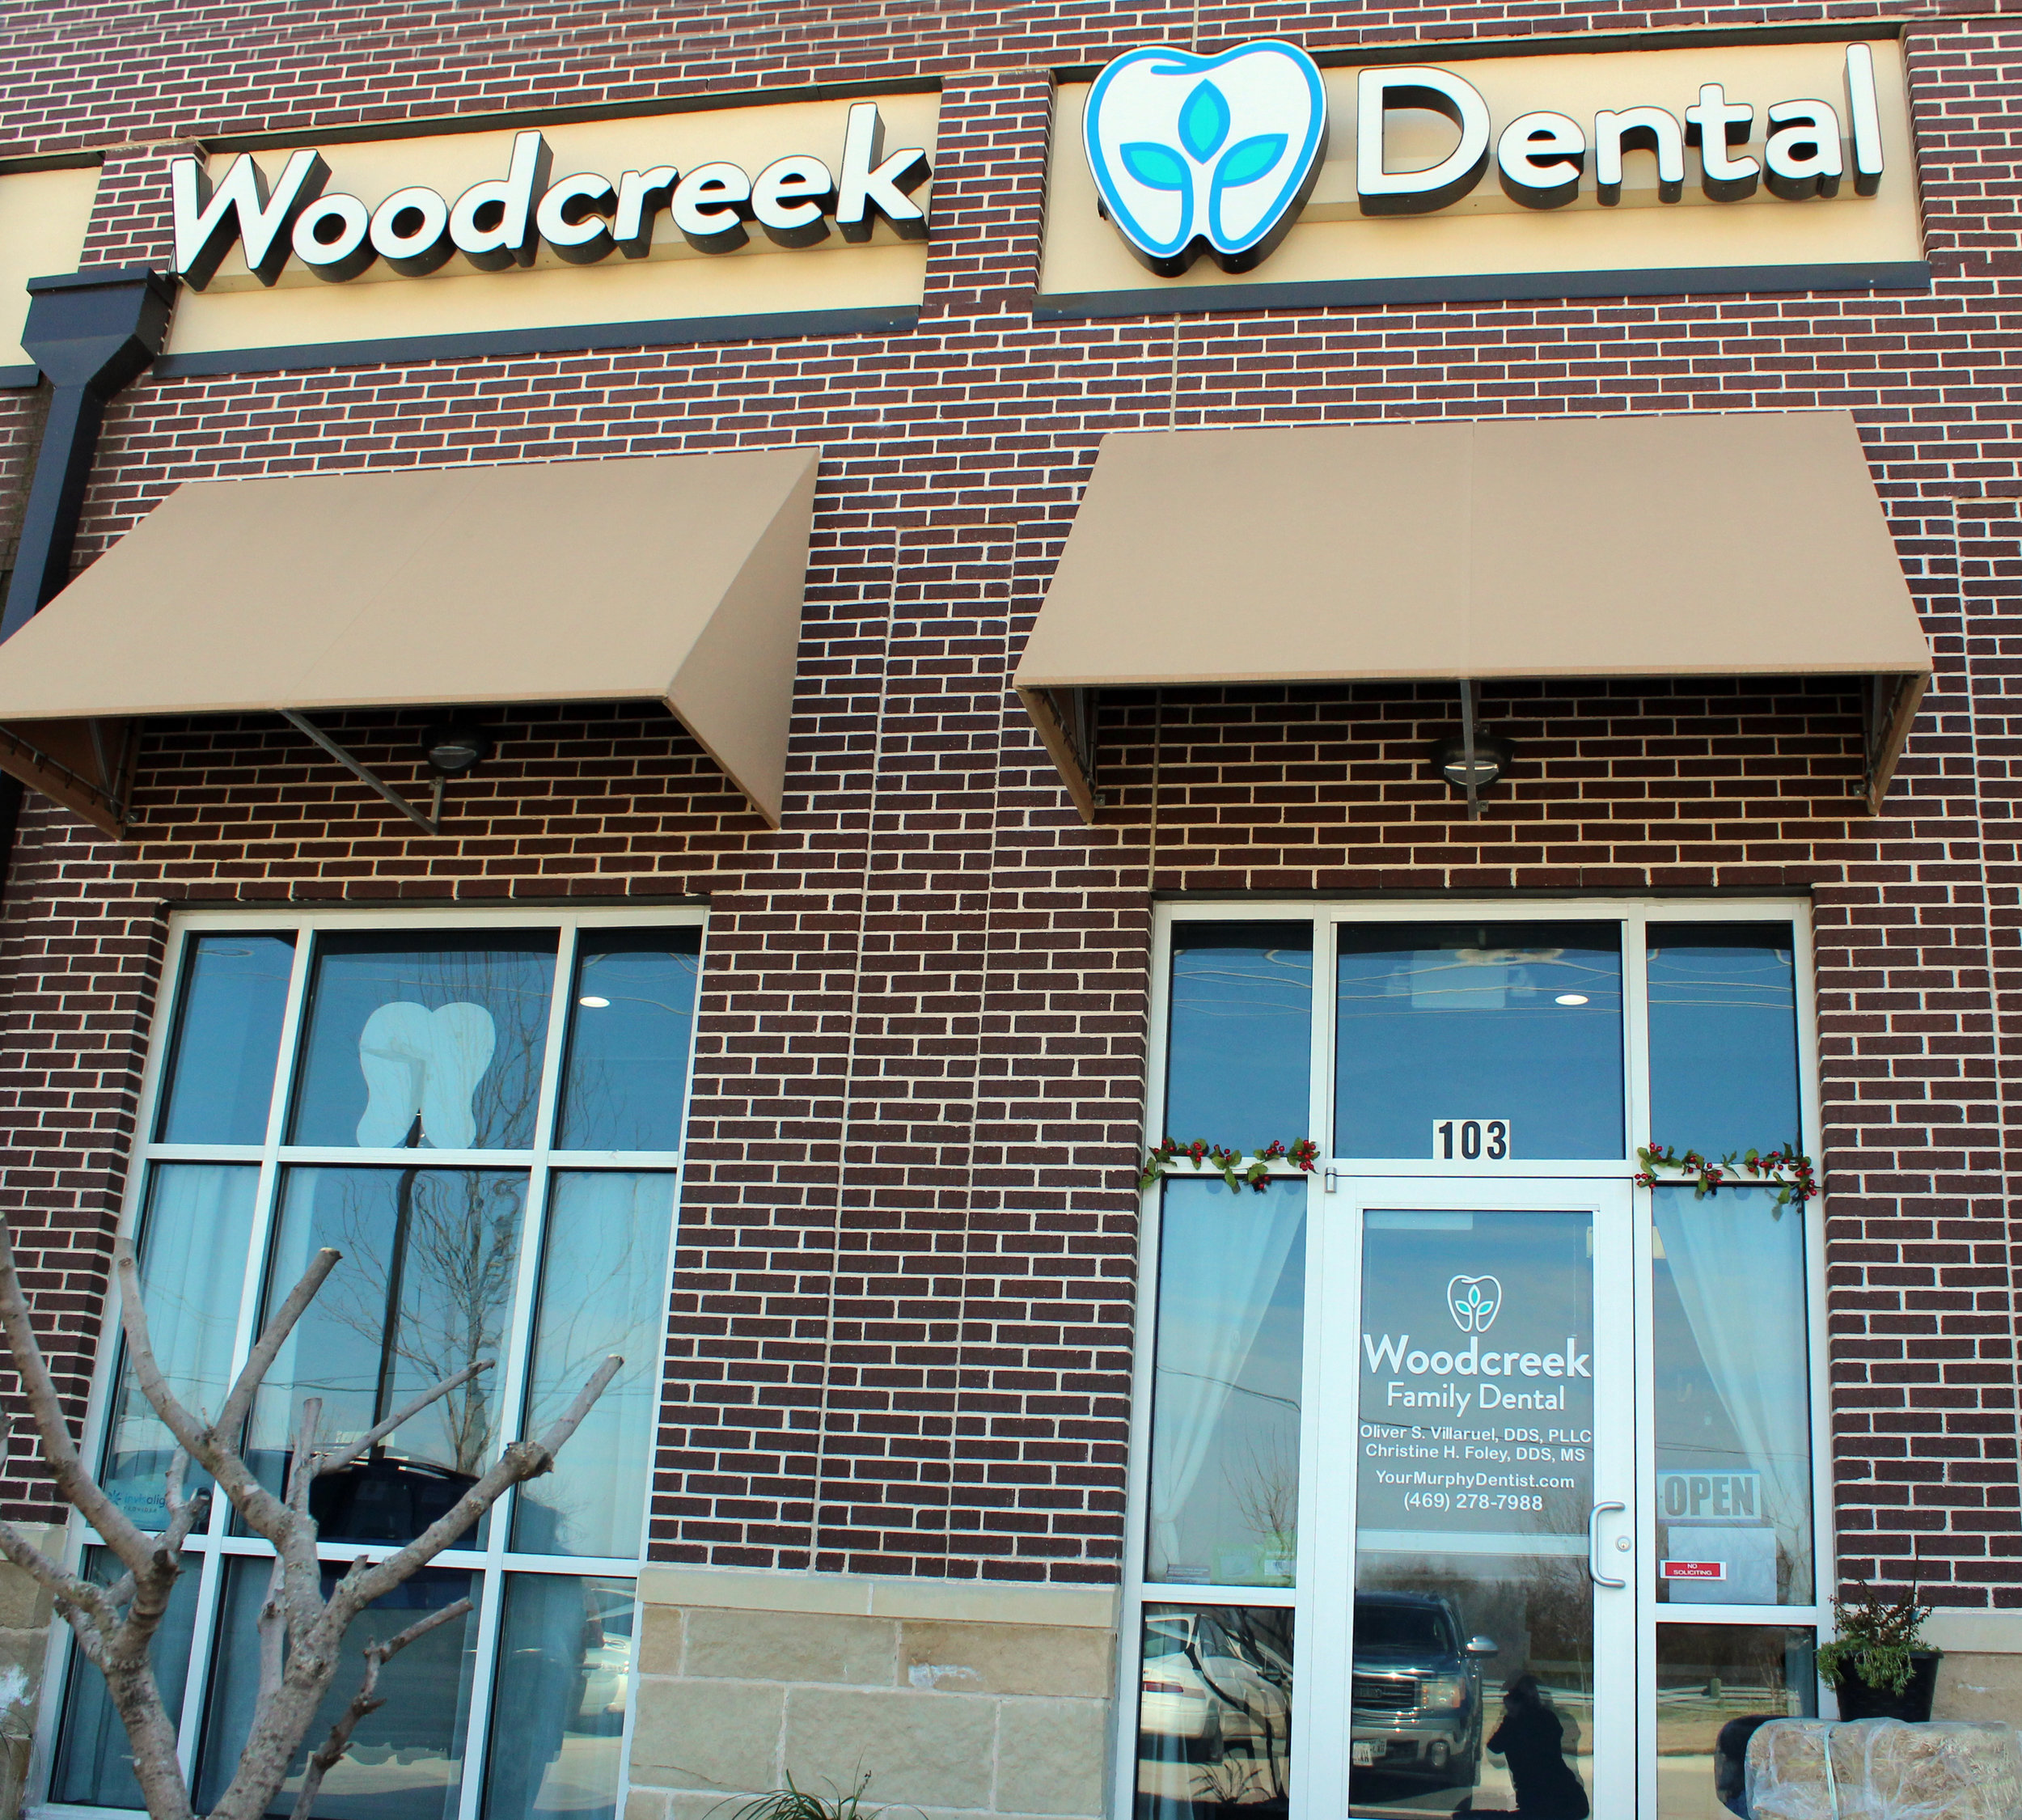 Woodcreek Family Dental is located at 410 West FM 544, suite 103 in Murphy.